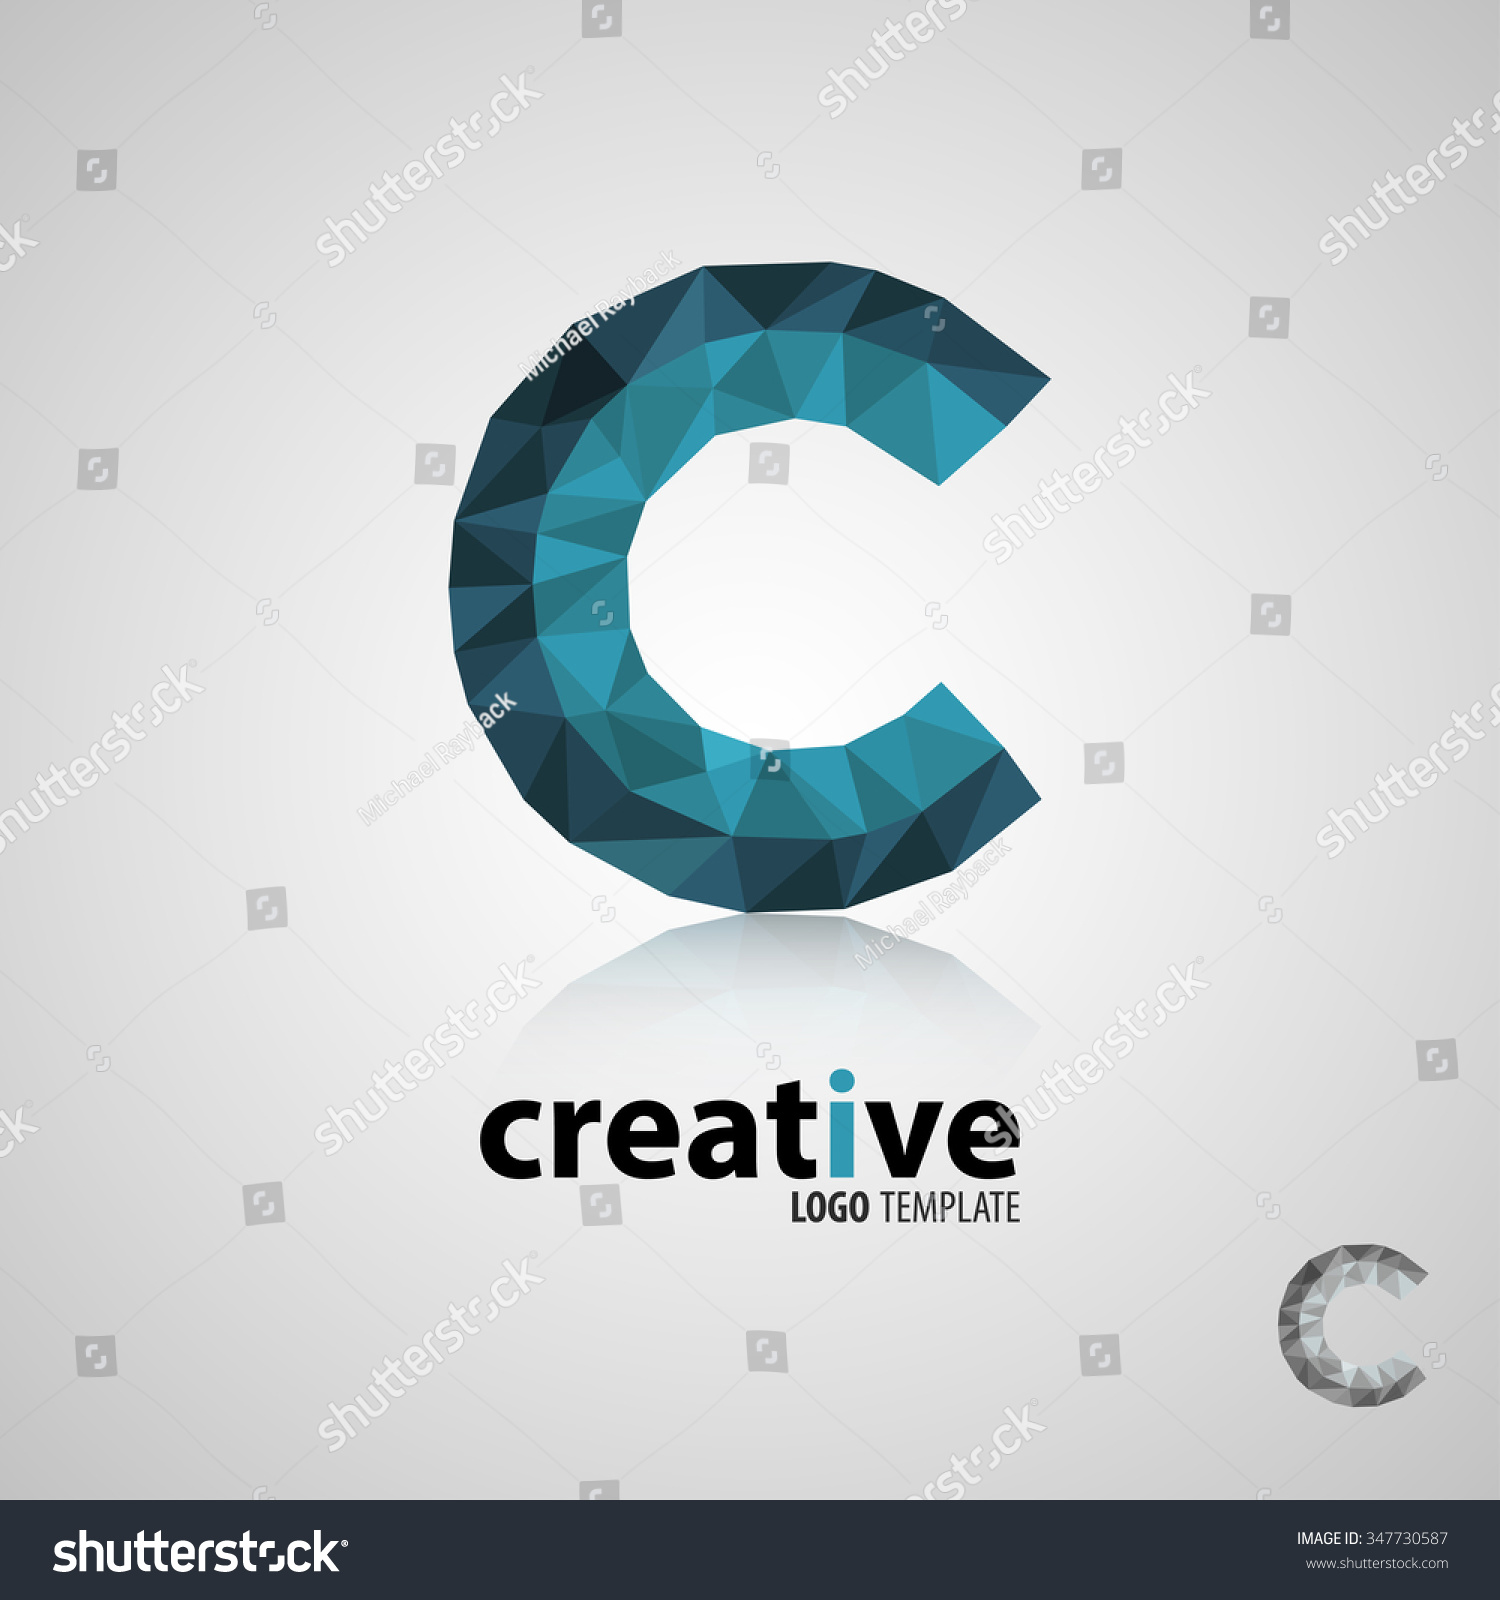 creative logo design letter c logo stock vector 347730587 shutterstock. Black Bedroom Furniture Sets. Home Design Ideas